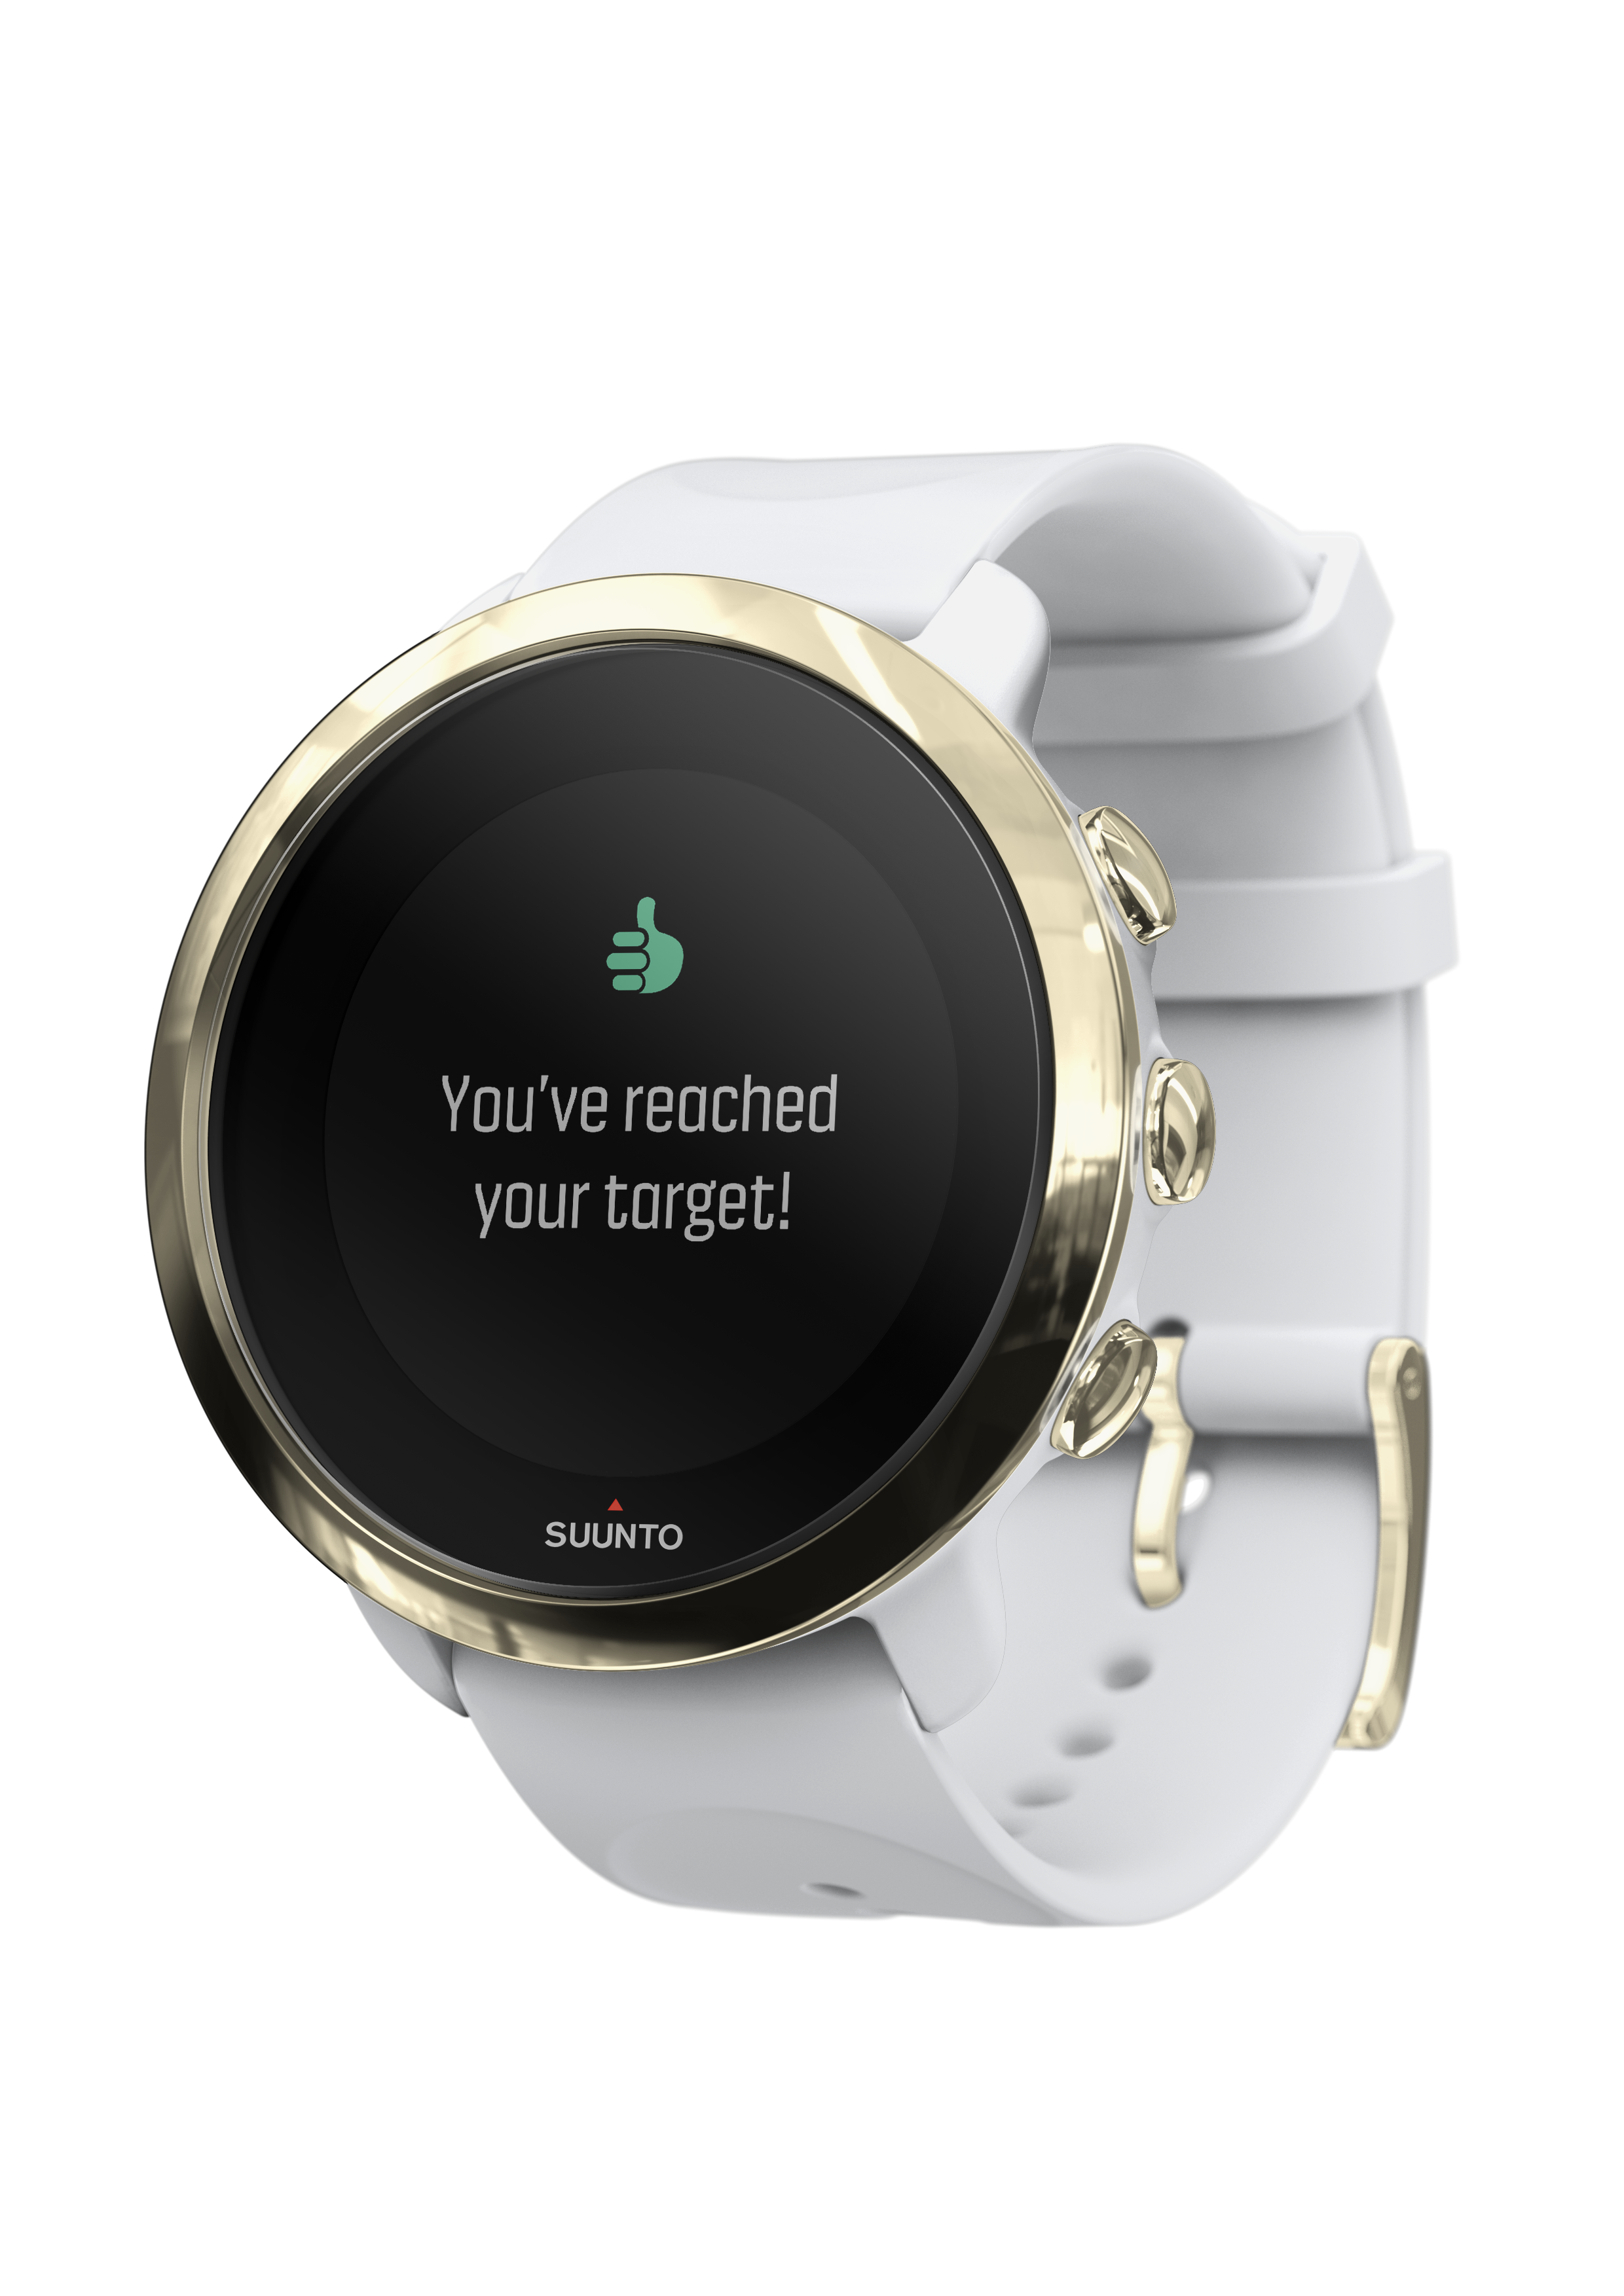 Suunto_3_Fitness_perspective-gold-thumbup-151217.png